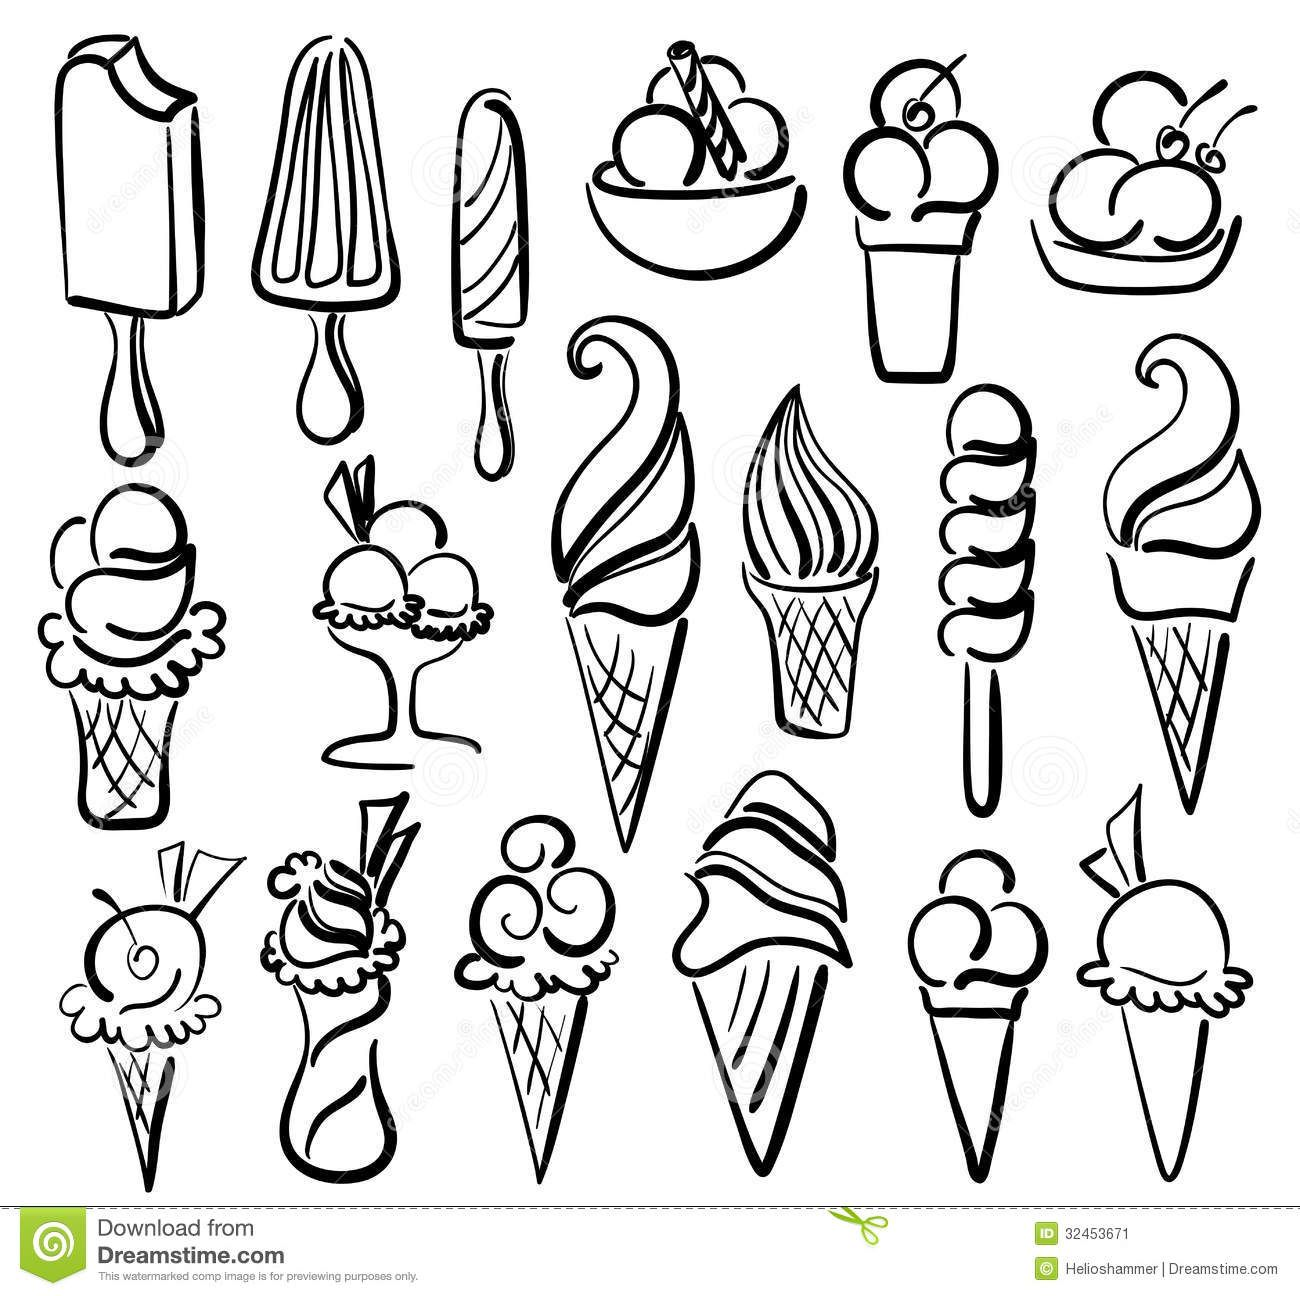 Line Art Ice Cream : Ice cream drawing google zoeken overtrekken stencils